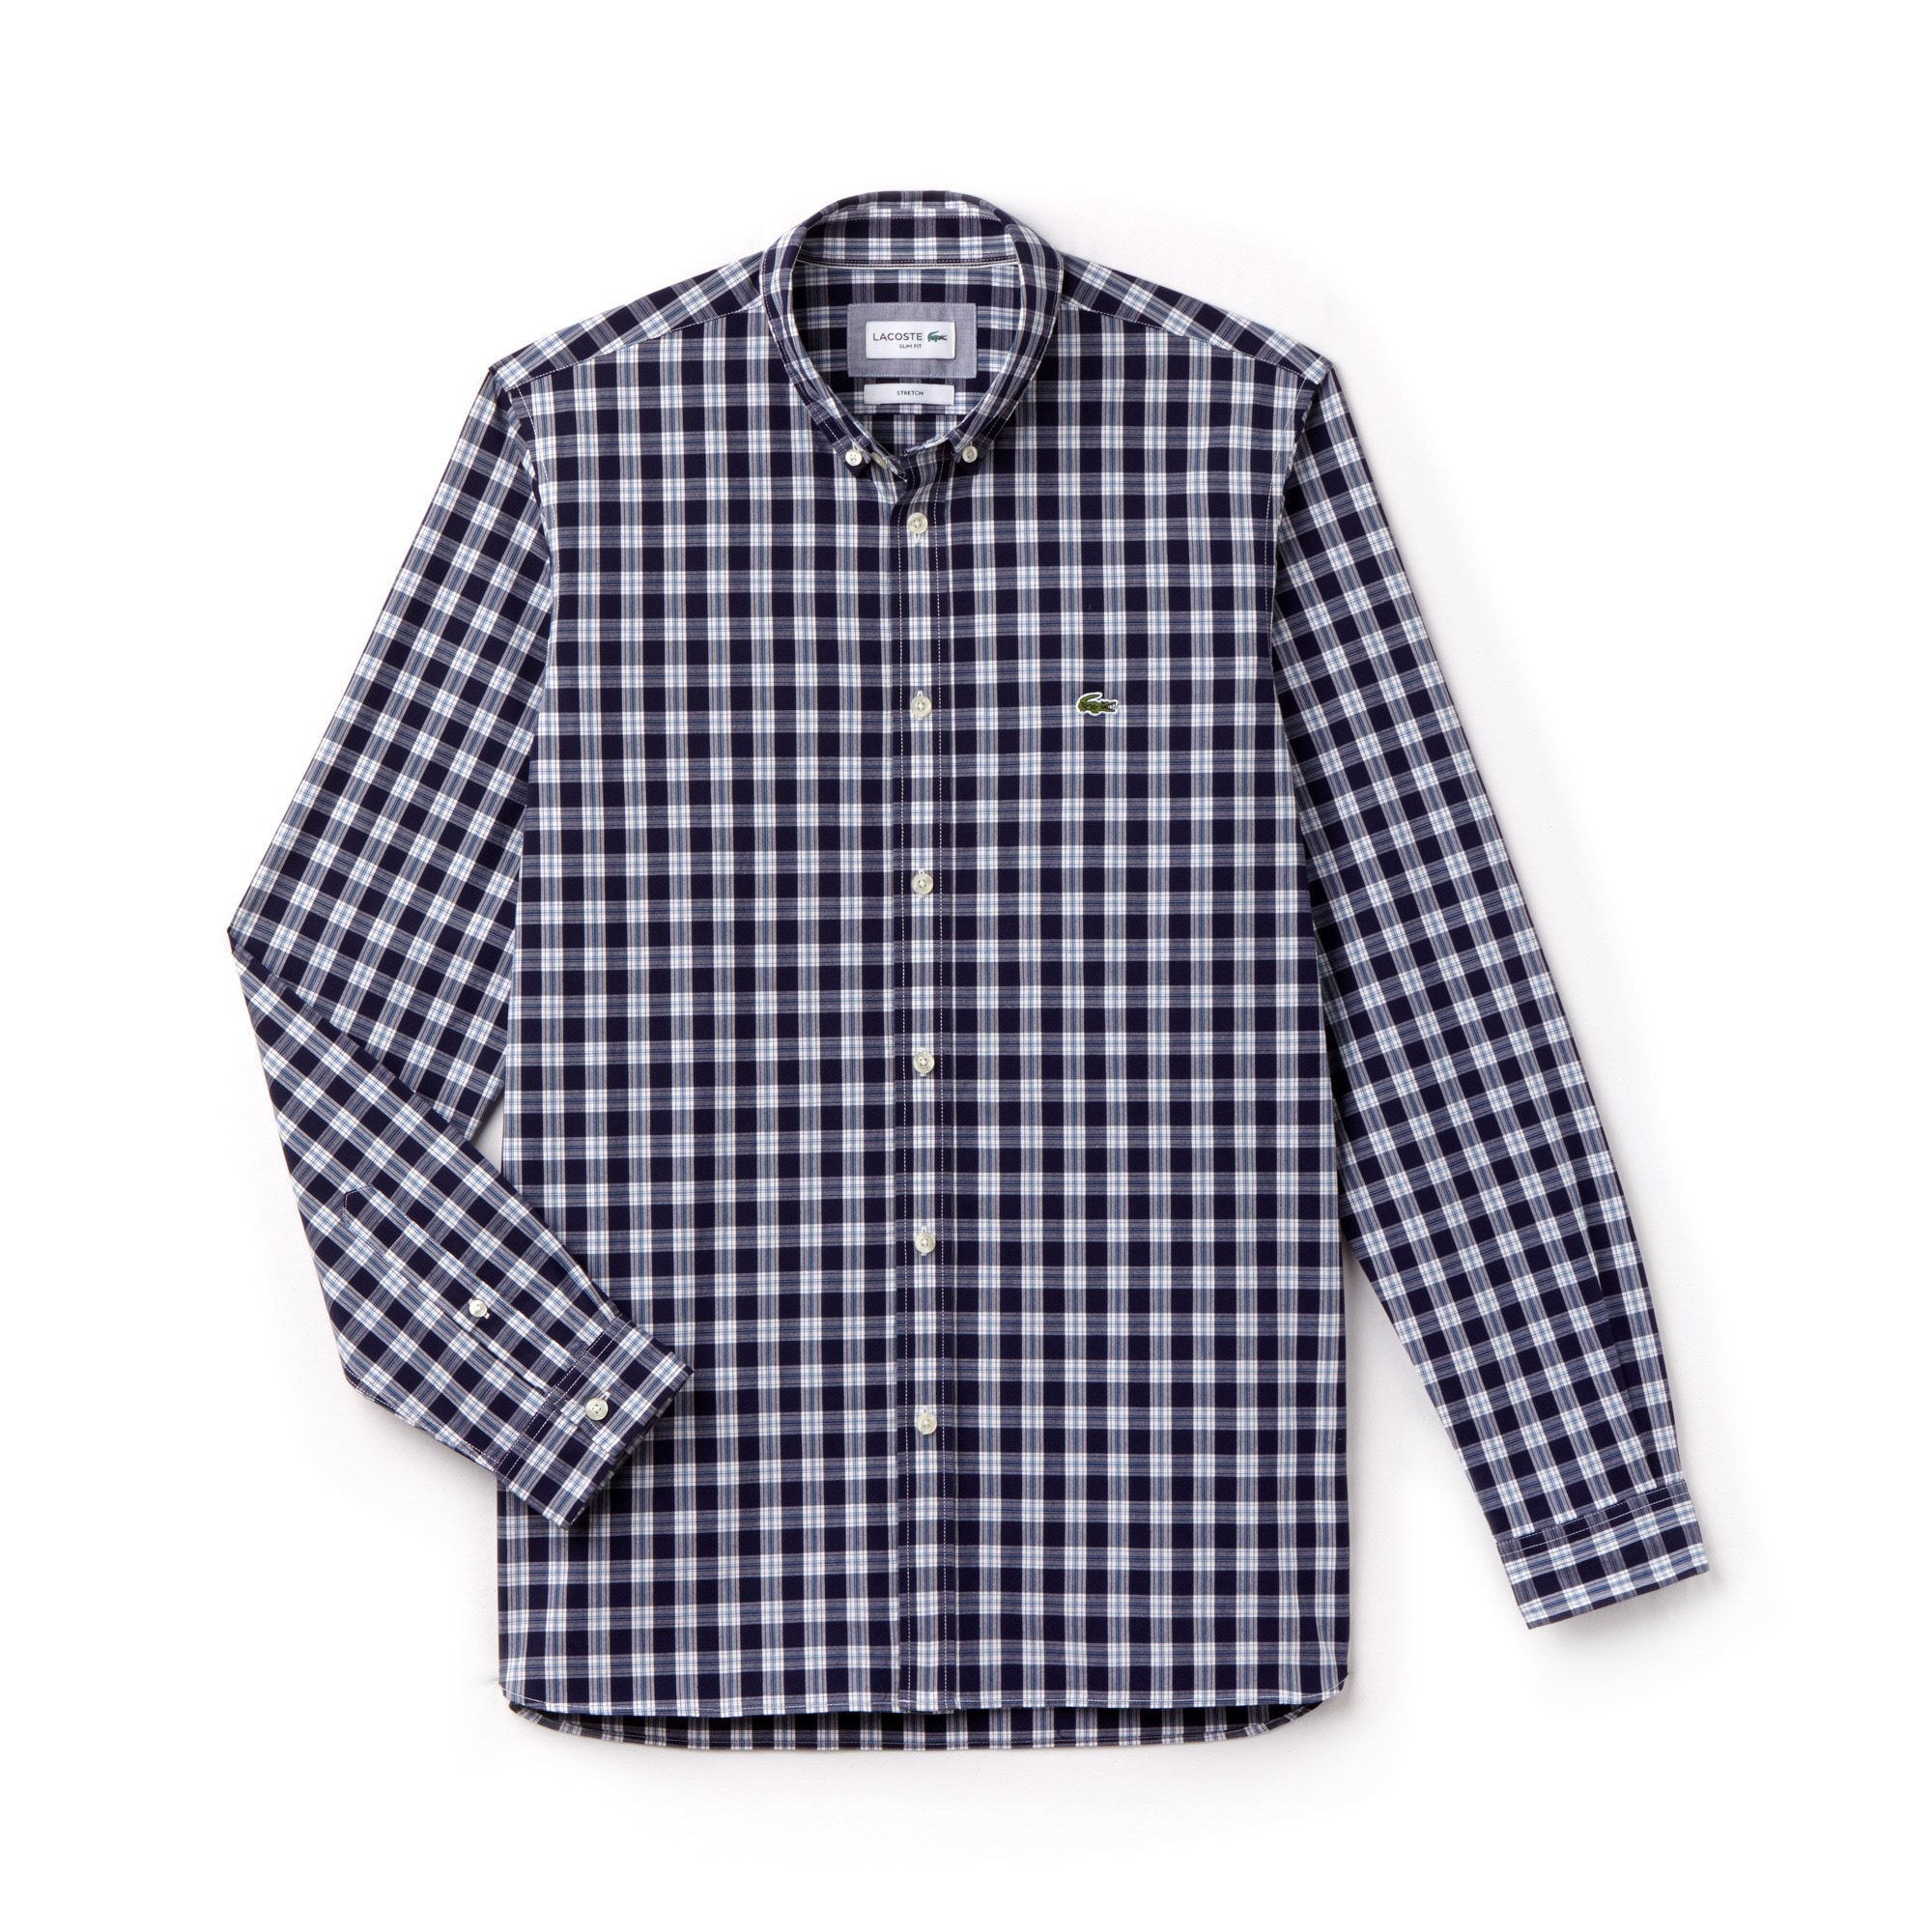 Men's Slim Fit Check Stretch Oxford Shirt